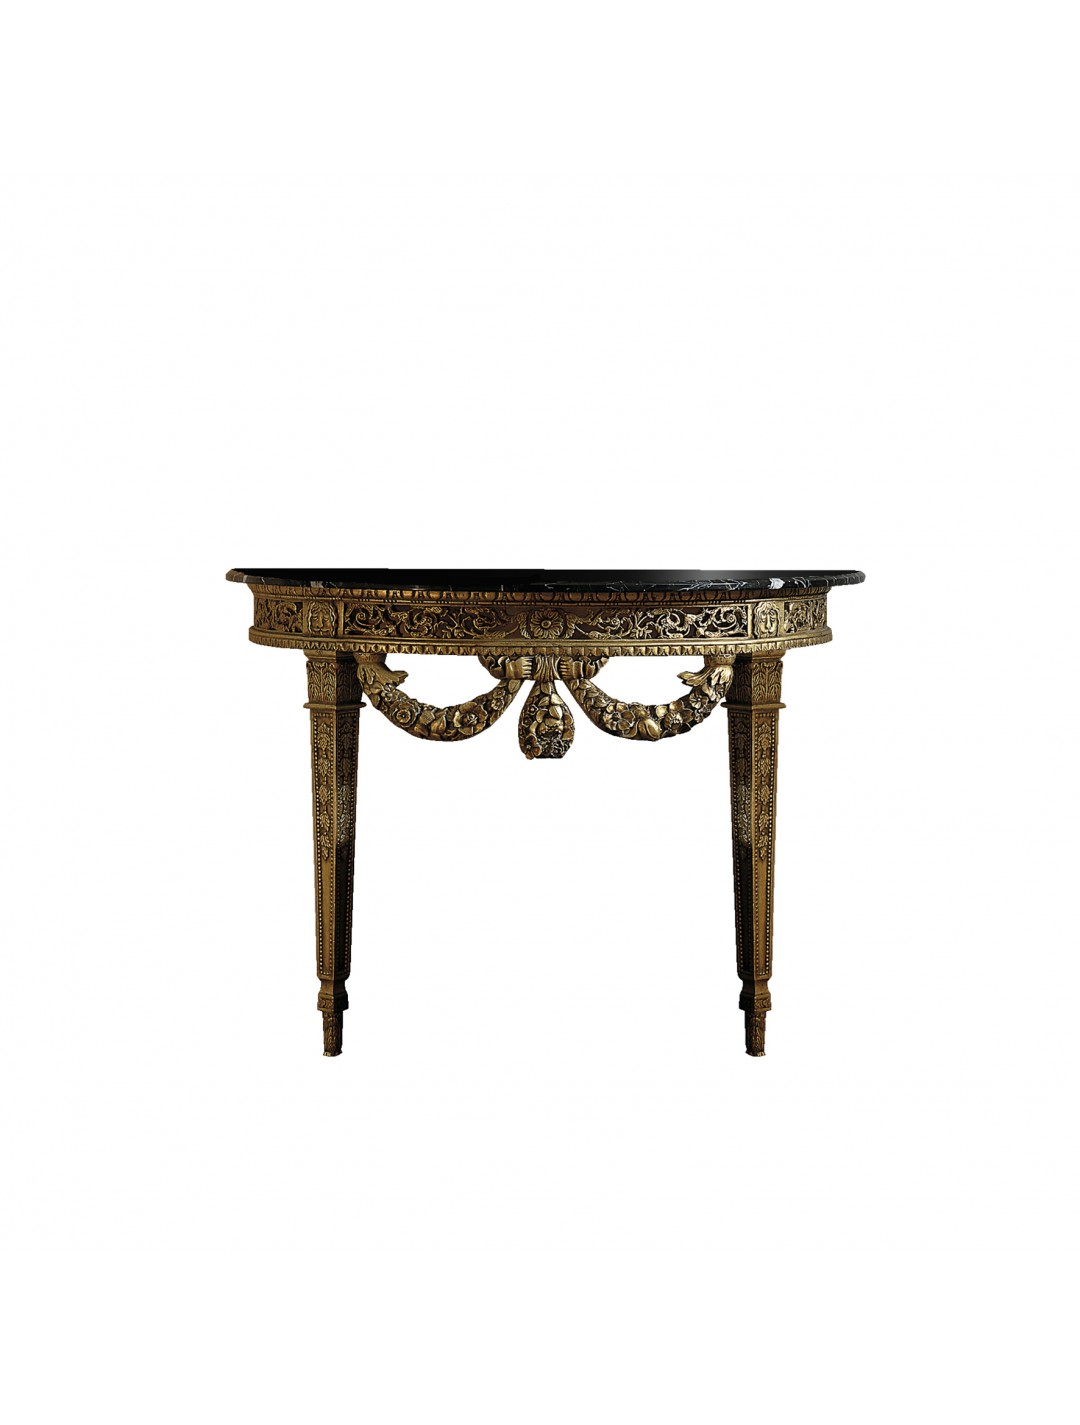 BARROCO CARVED WOOD CONSOLE